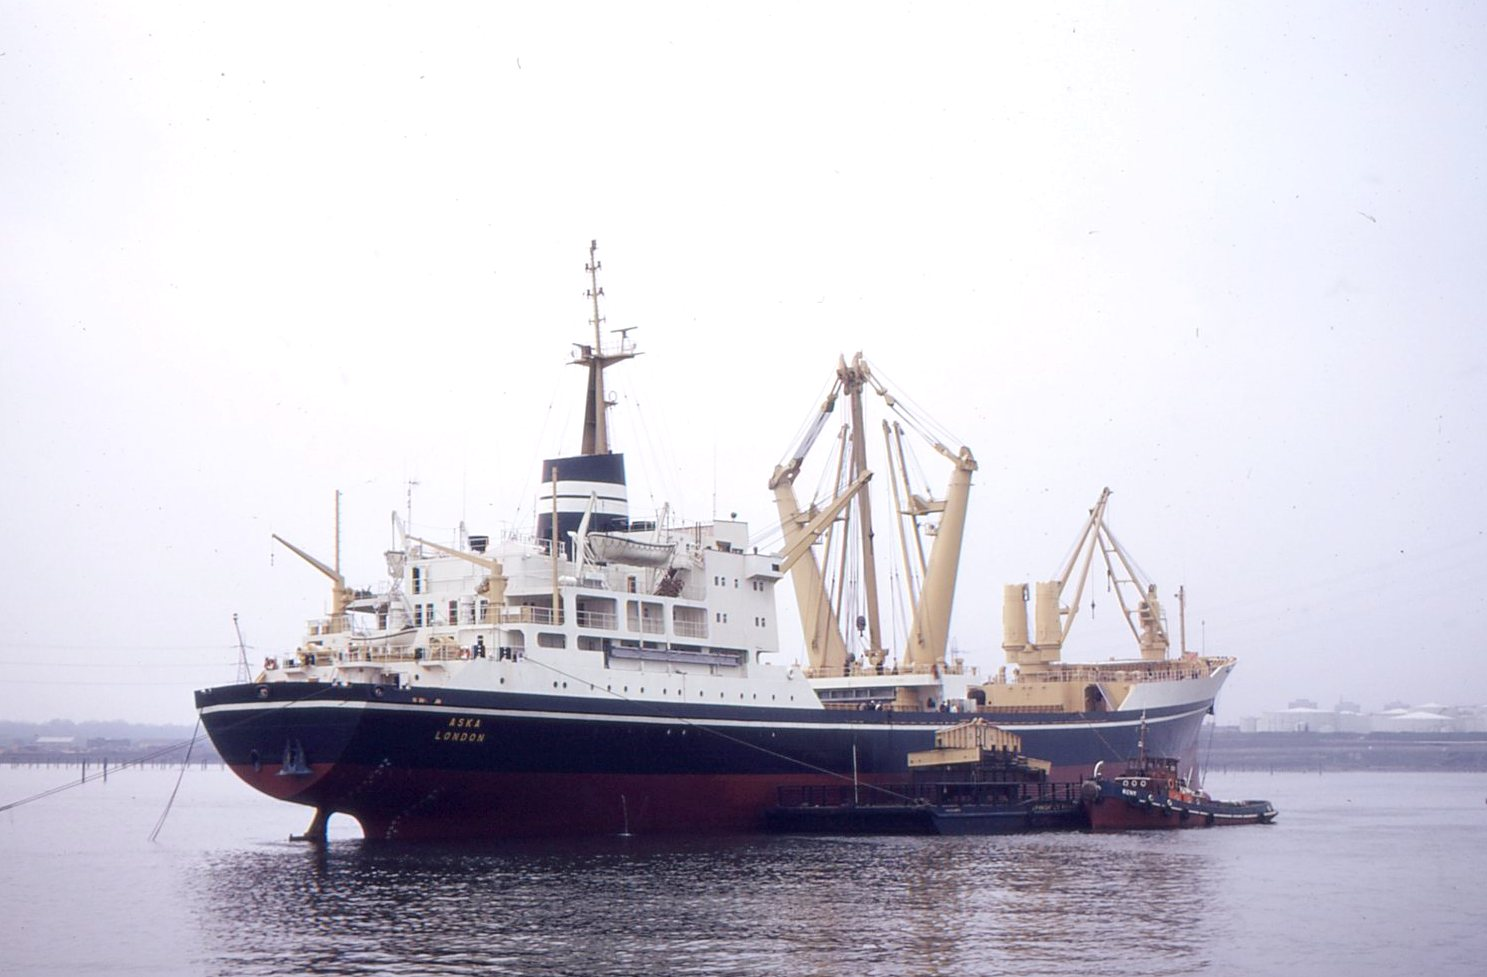 Aska and Tug Kent Heavy Lift Testing Gear May 1970.jpg